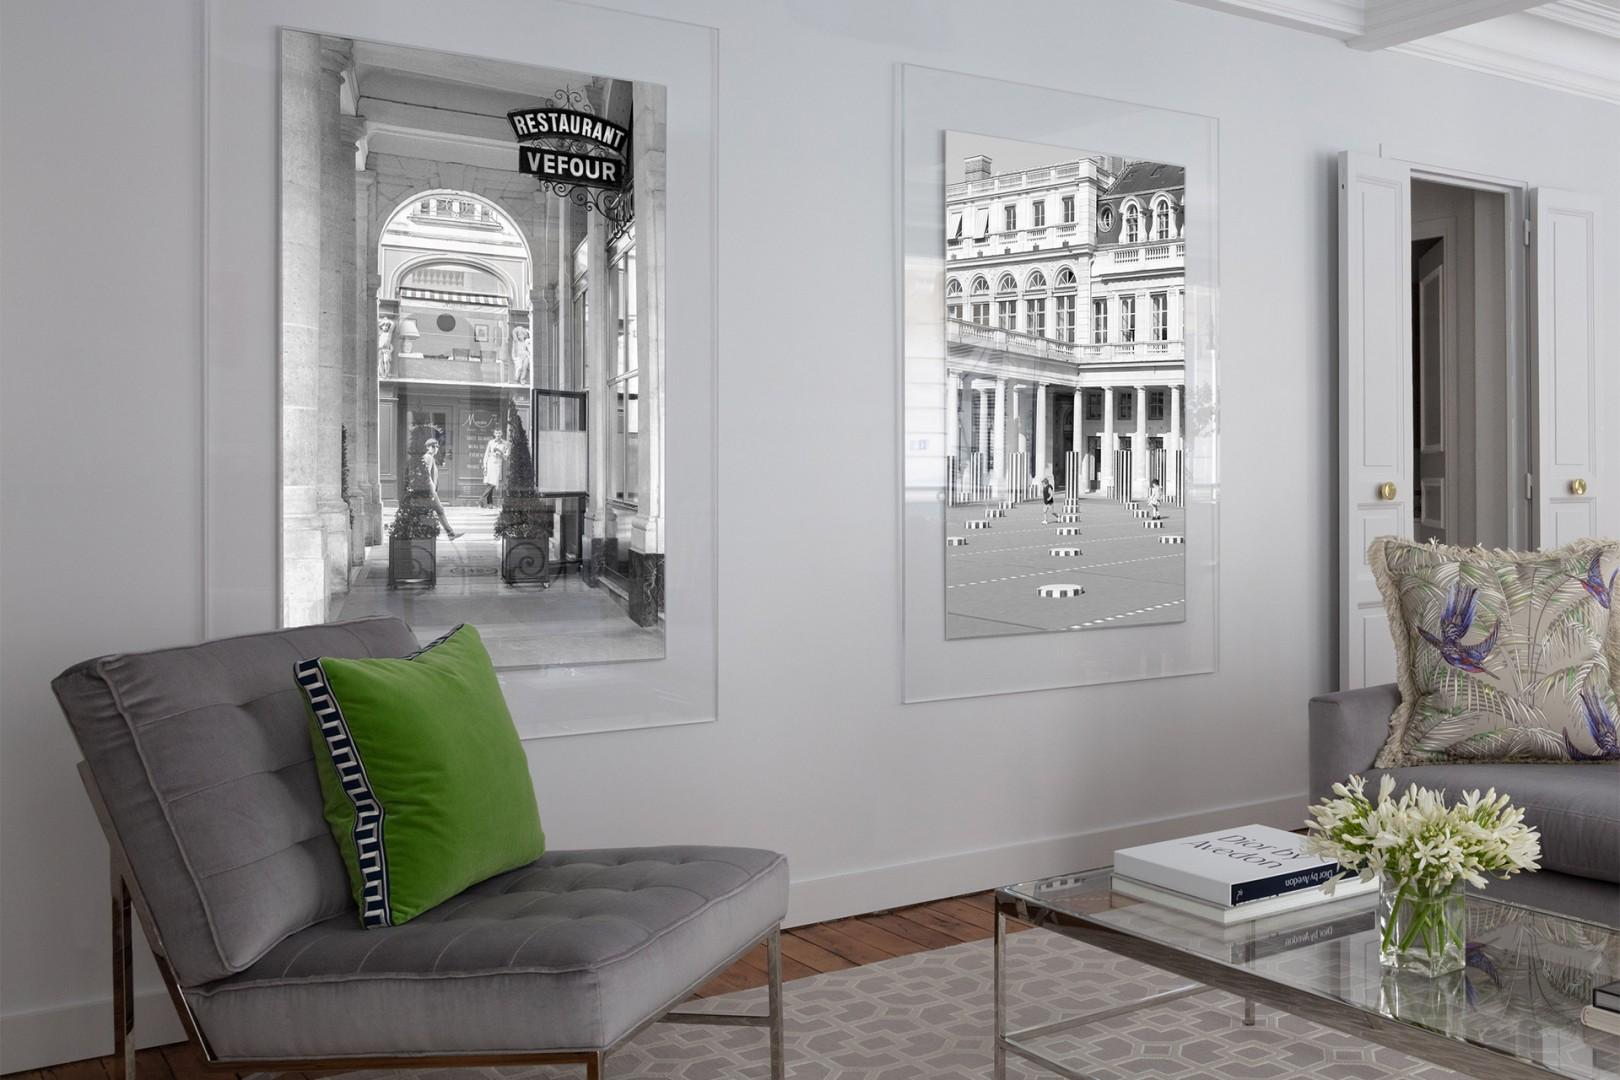 Parisian-inspired artwork by the owner in the living room